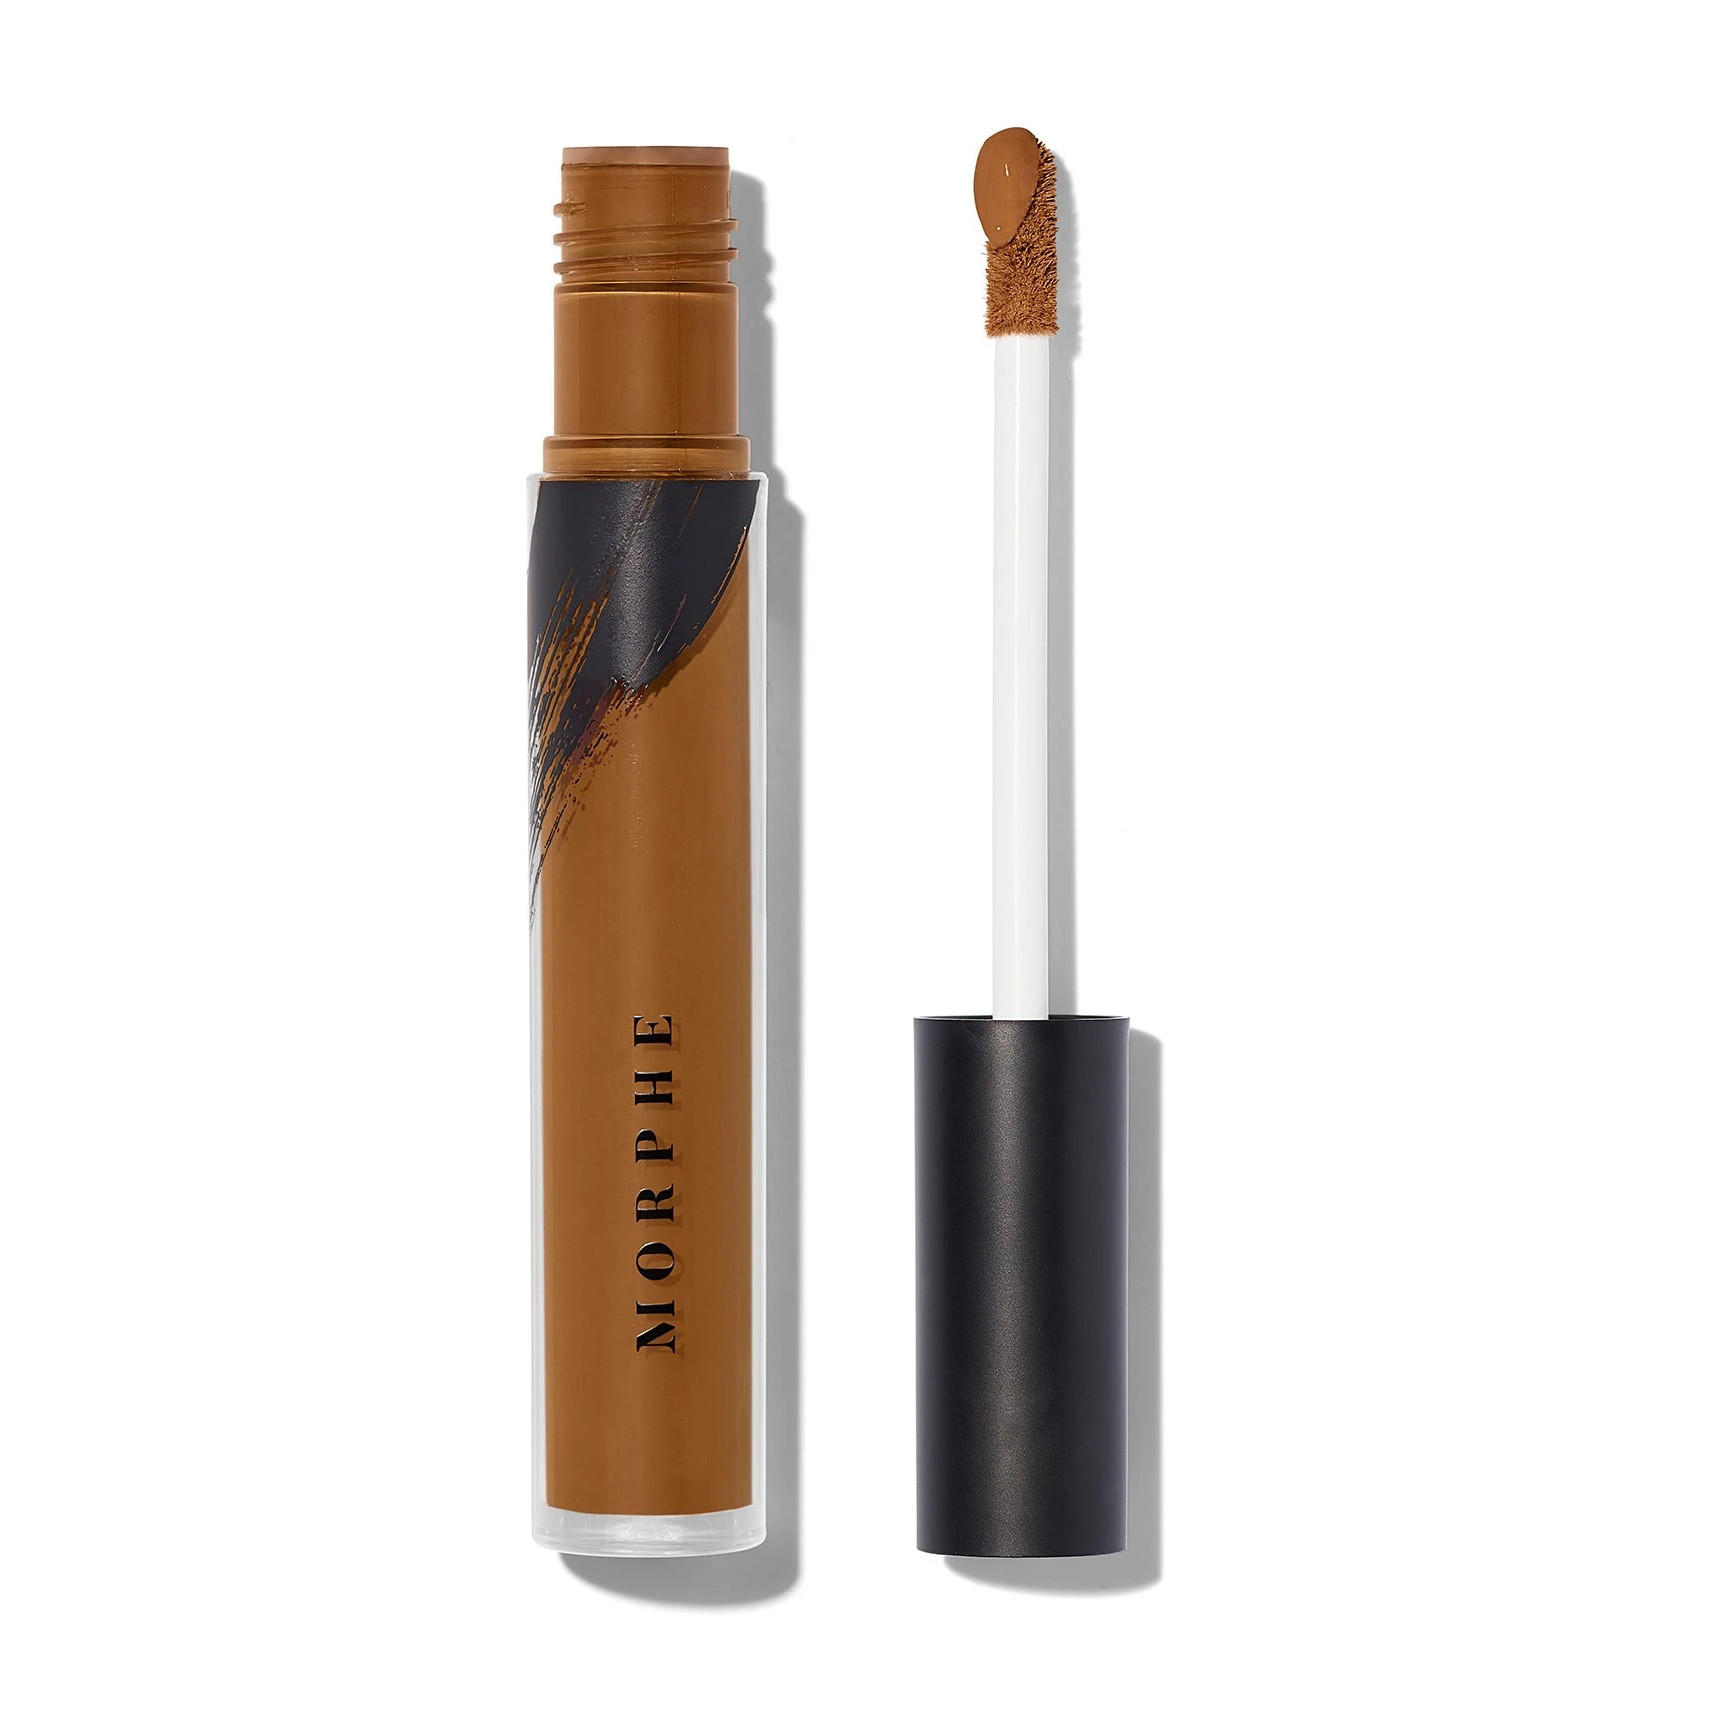 Morphe Fluidity Full-Coverage Concealer C4.35